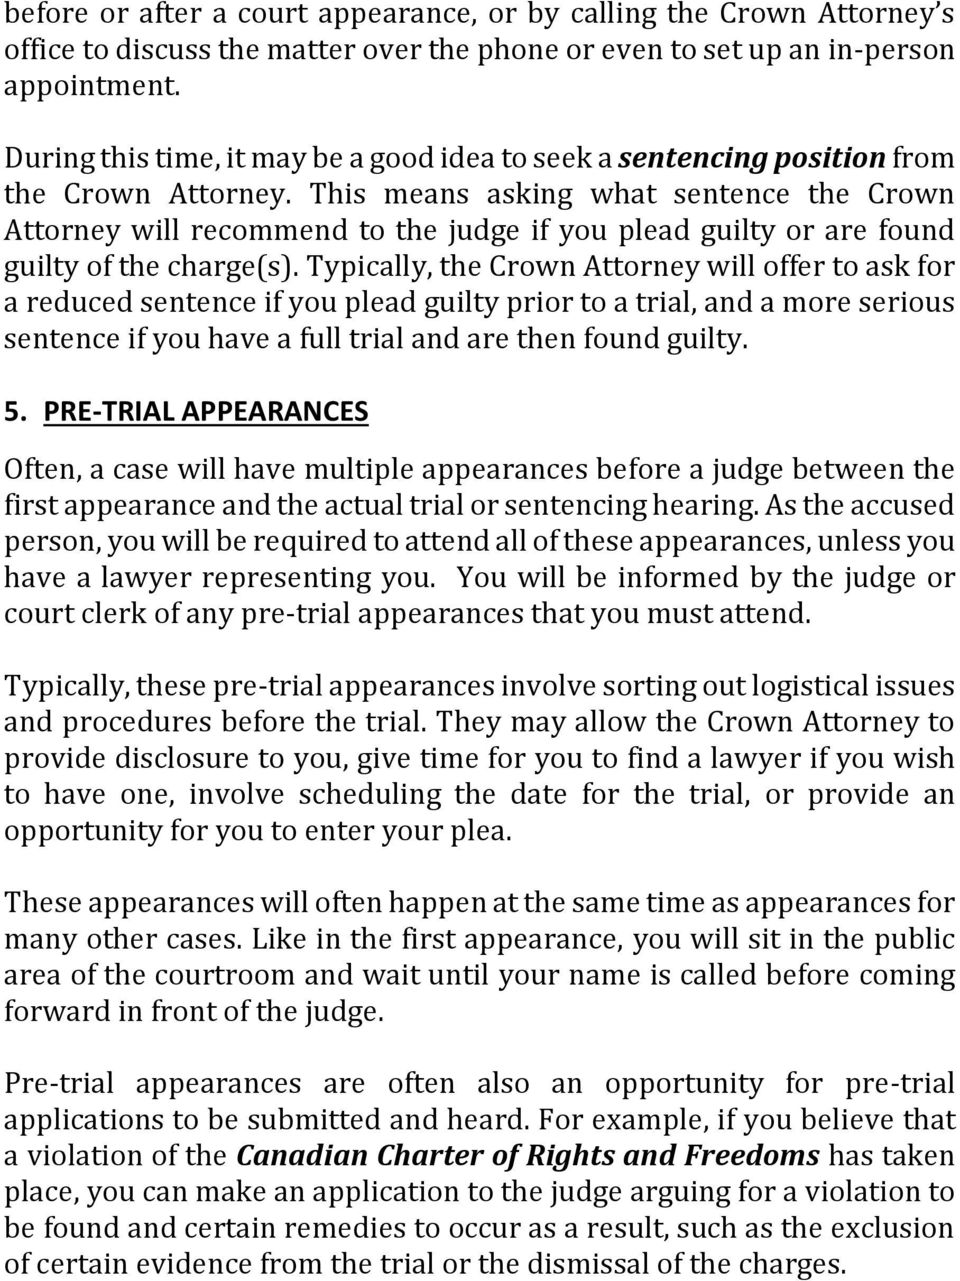 This means asking what sentence the Crown Attorney will recommend to the judge if you plead guilty or are found guilty of the charge(s).